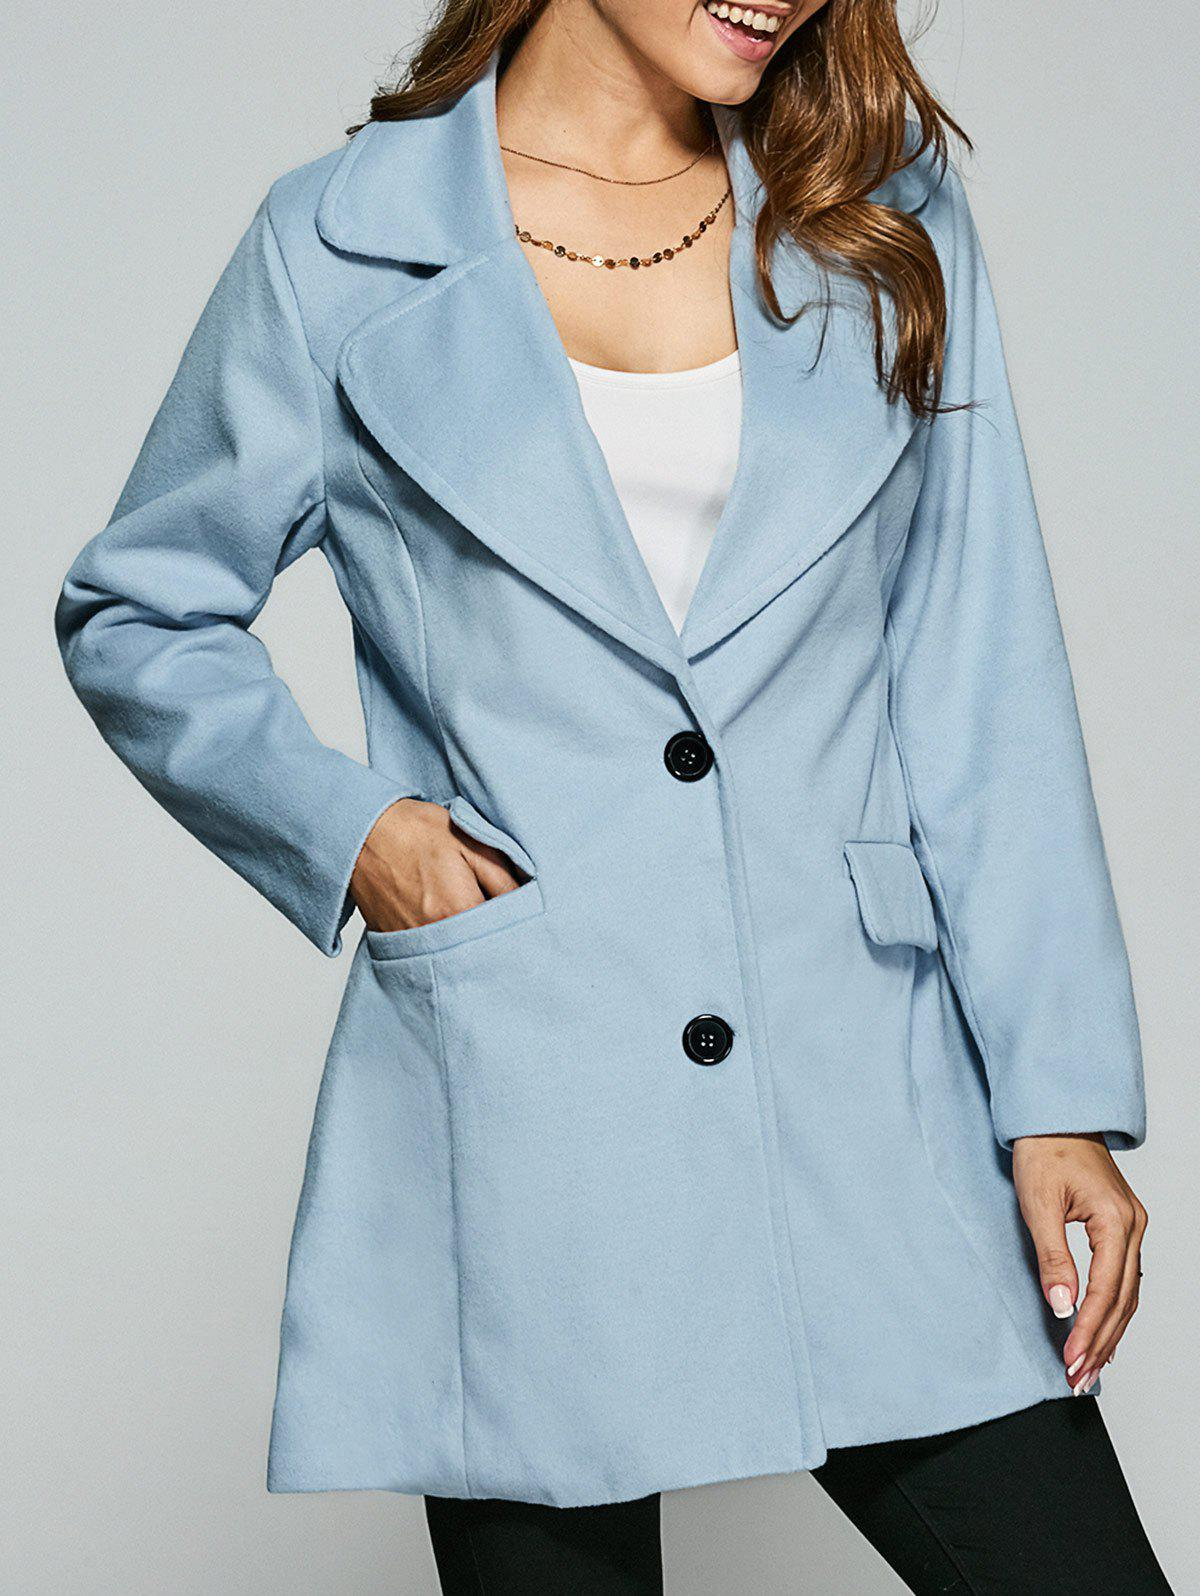 Wool Buttoned Pea Coat - LIGHT BLUE S